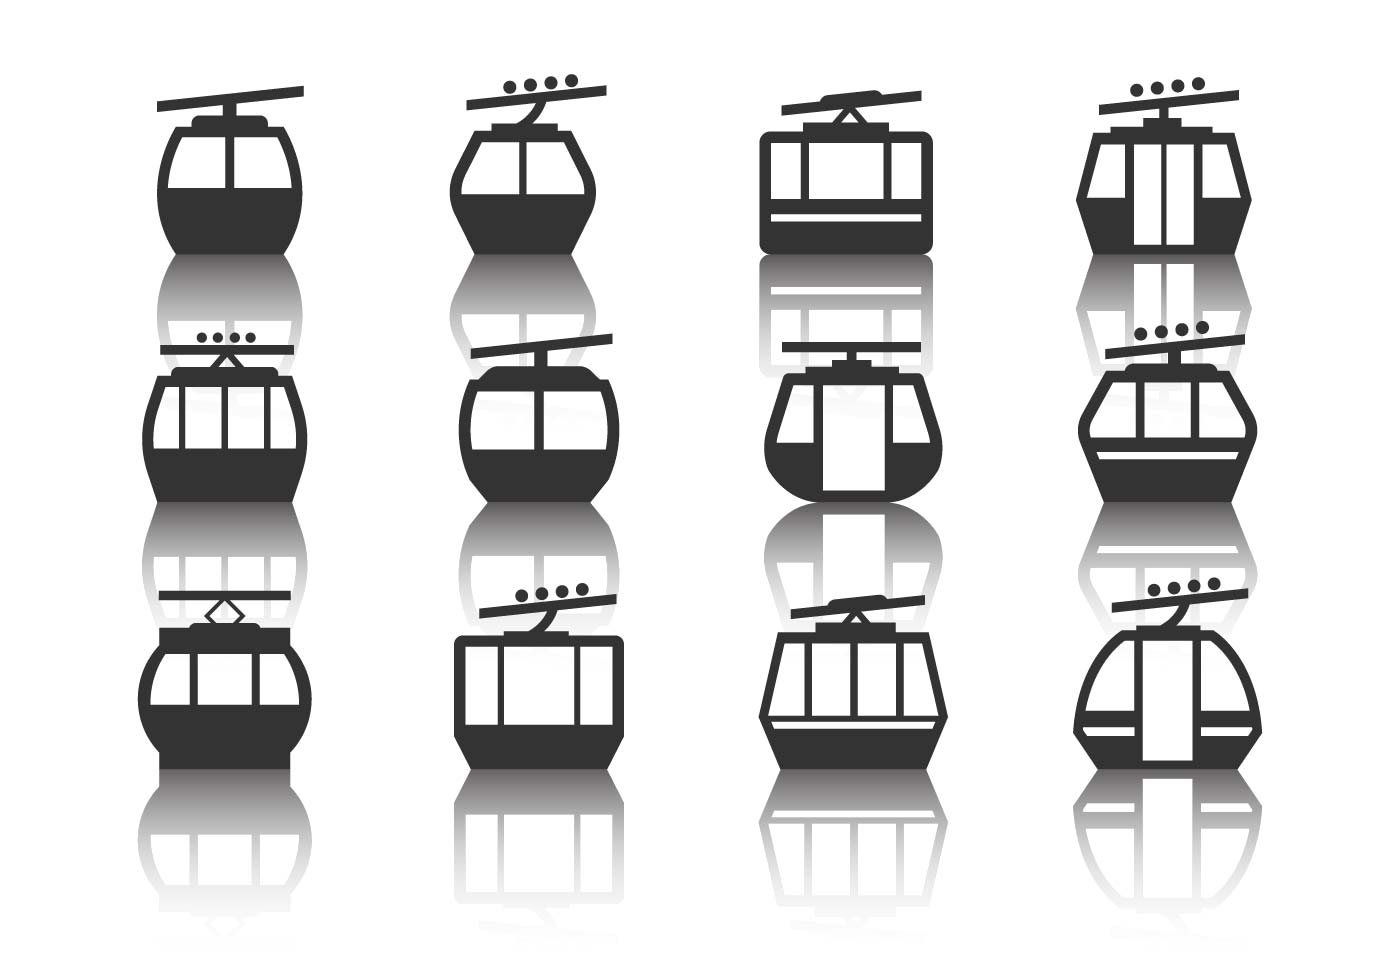 Cable Car Vector - Download Free Vector Art, Stock Graphics & Images